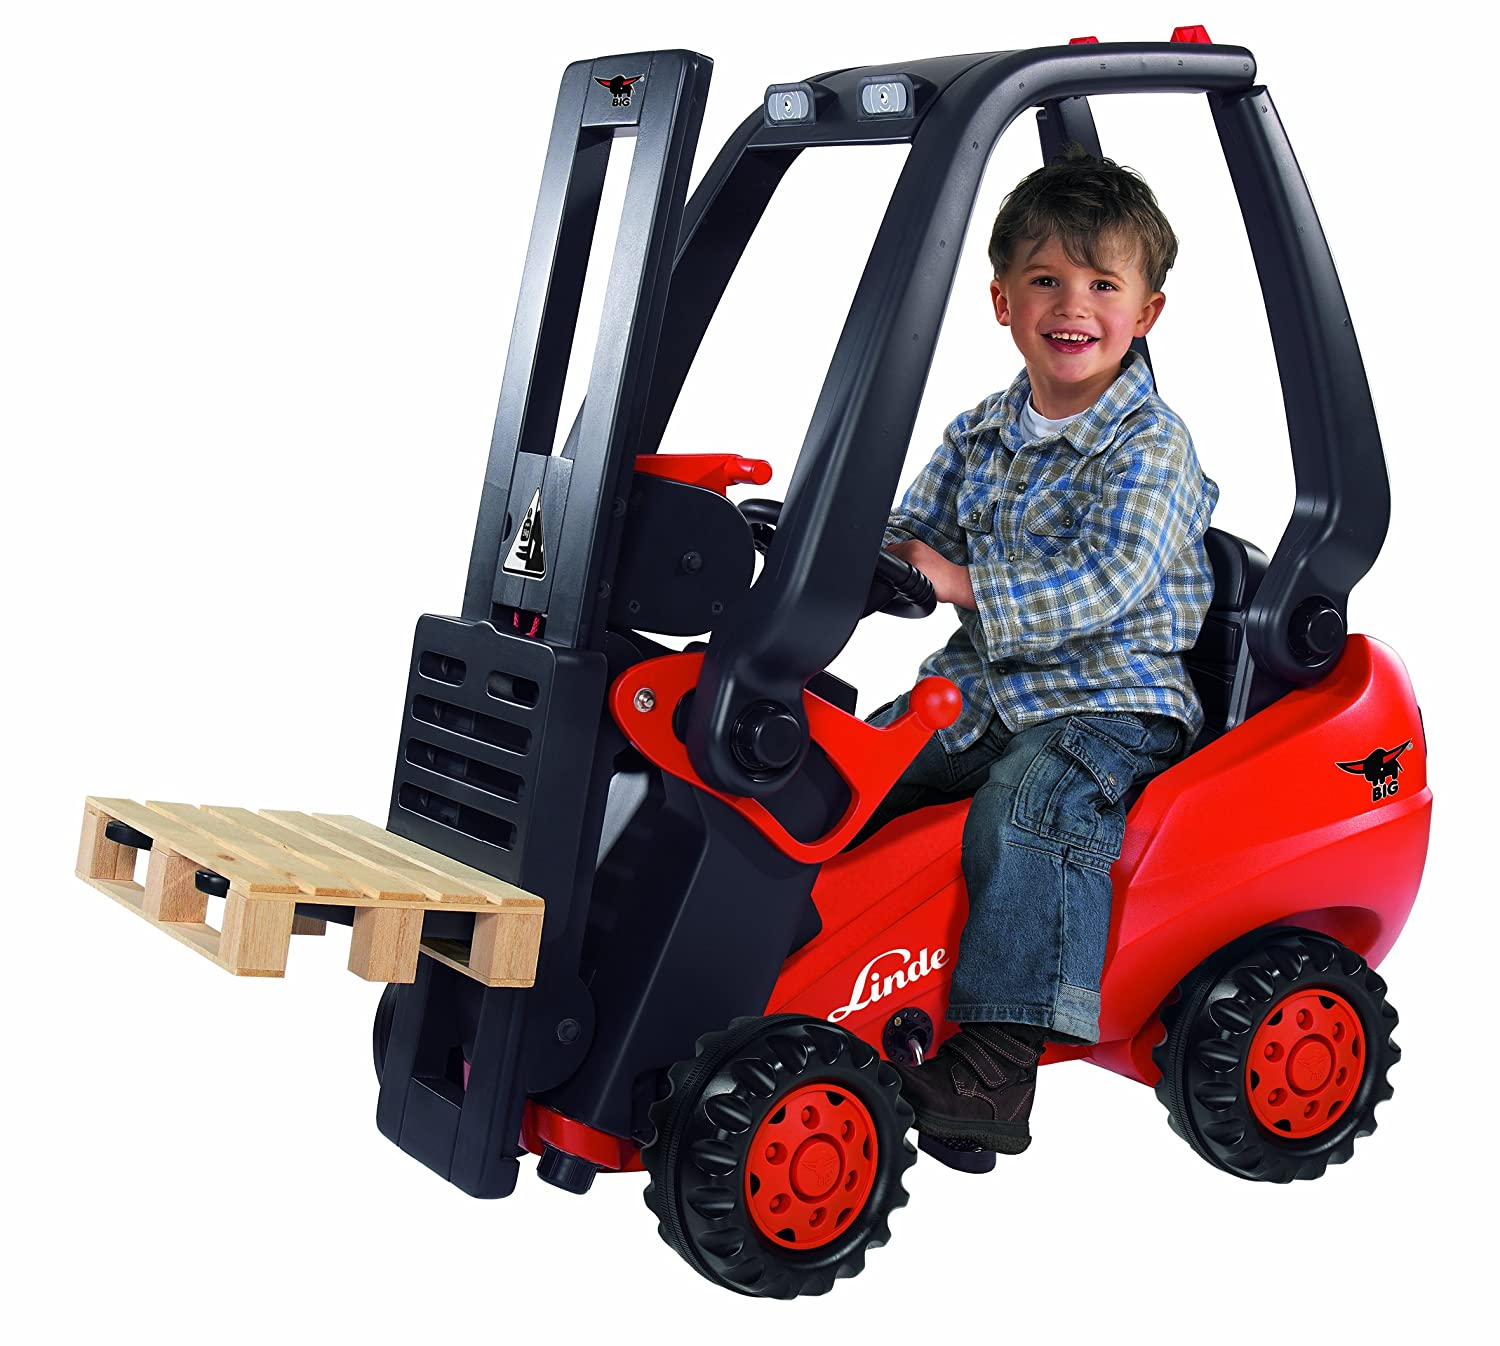 Linde Forklift Pedal Tractor